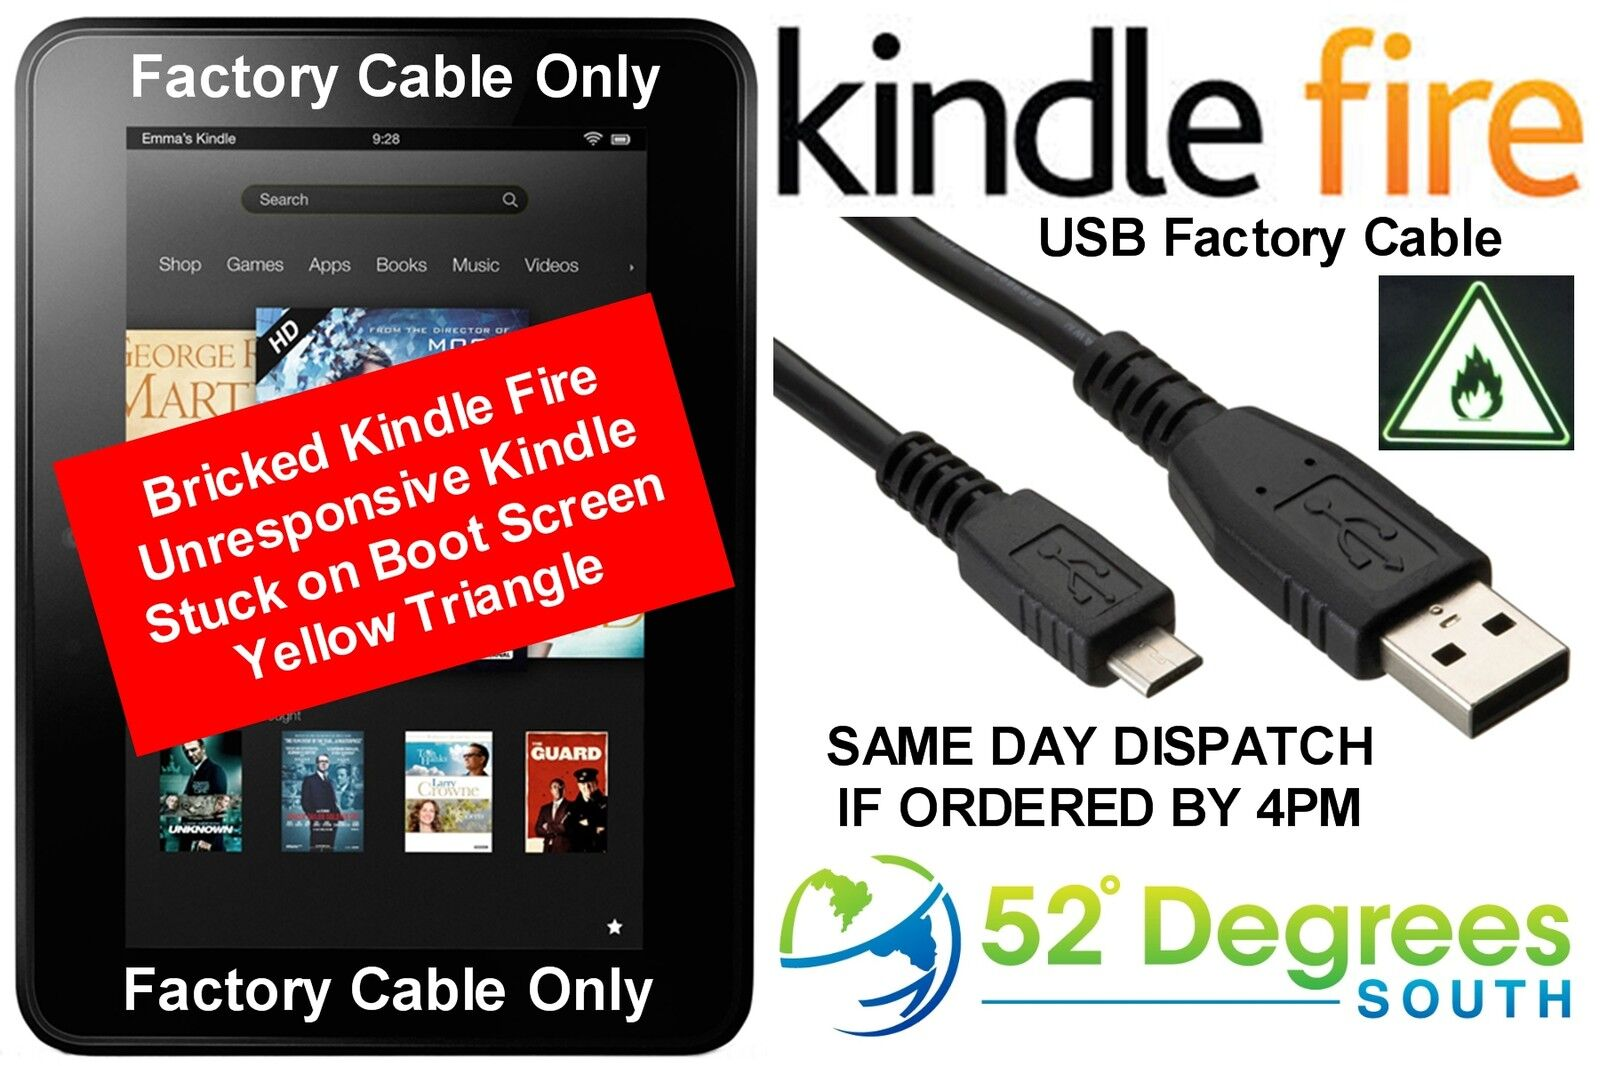 USB Factory Cable Kindle Fire Unbrick - CHEAPEST to Europe Same